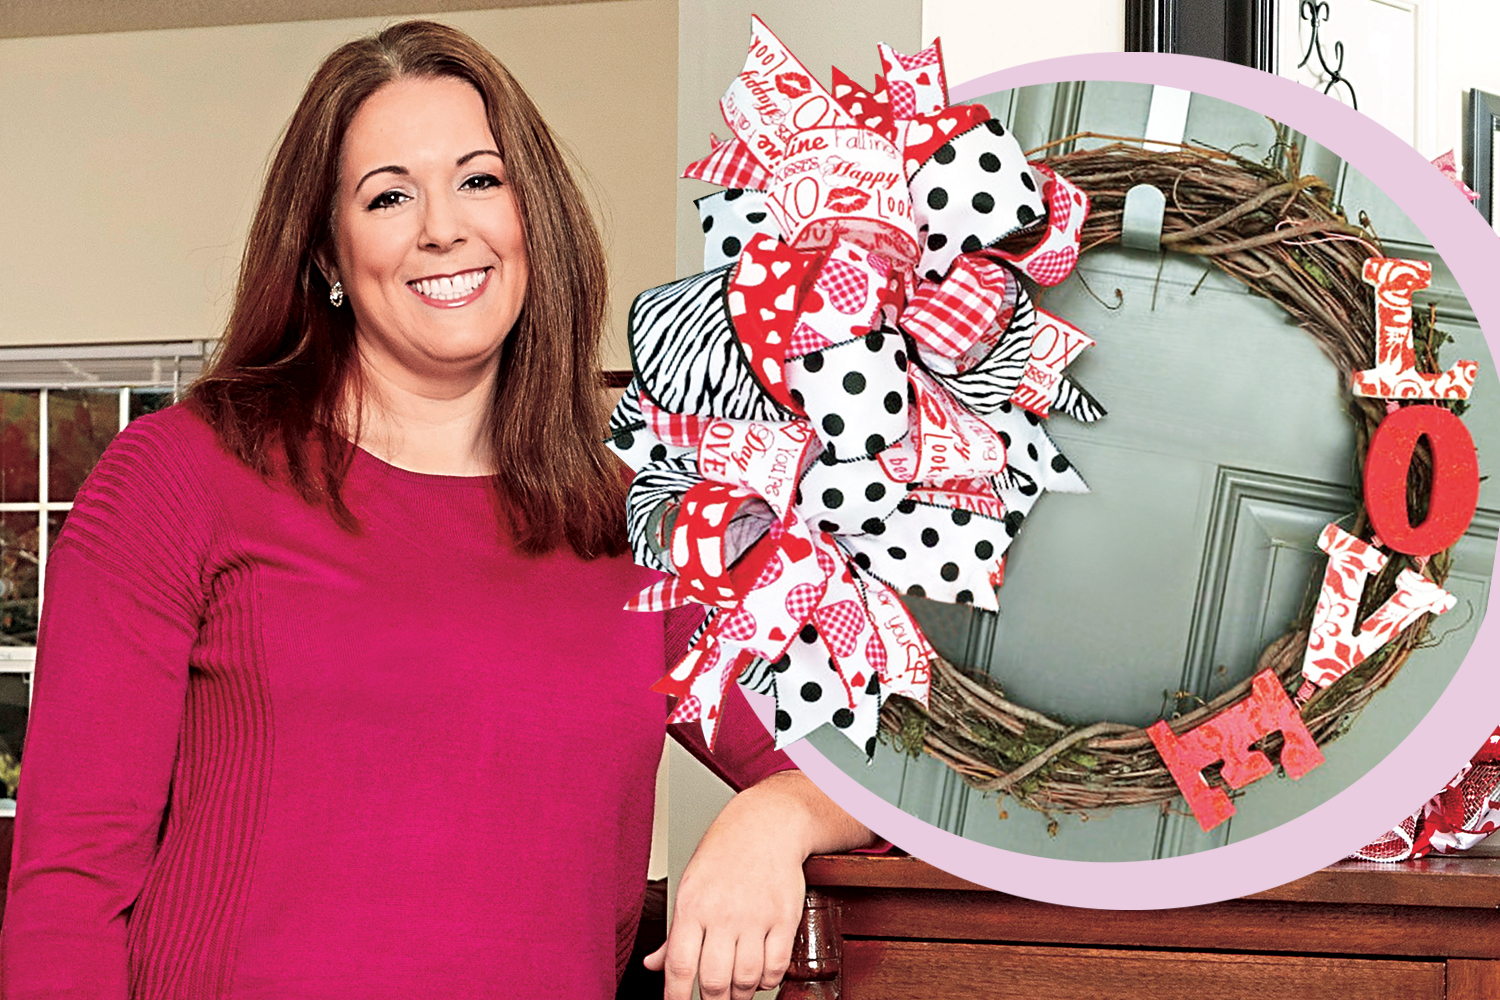 How to craft and sell wreaths